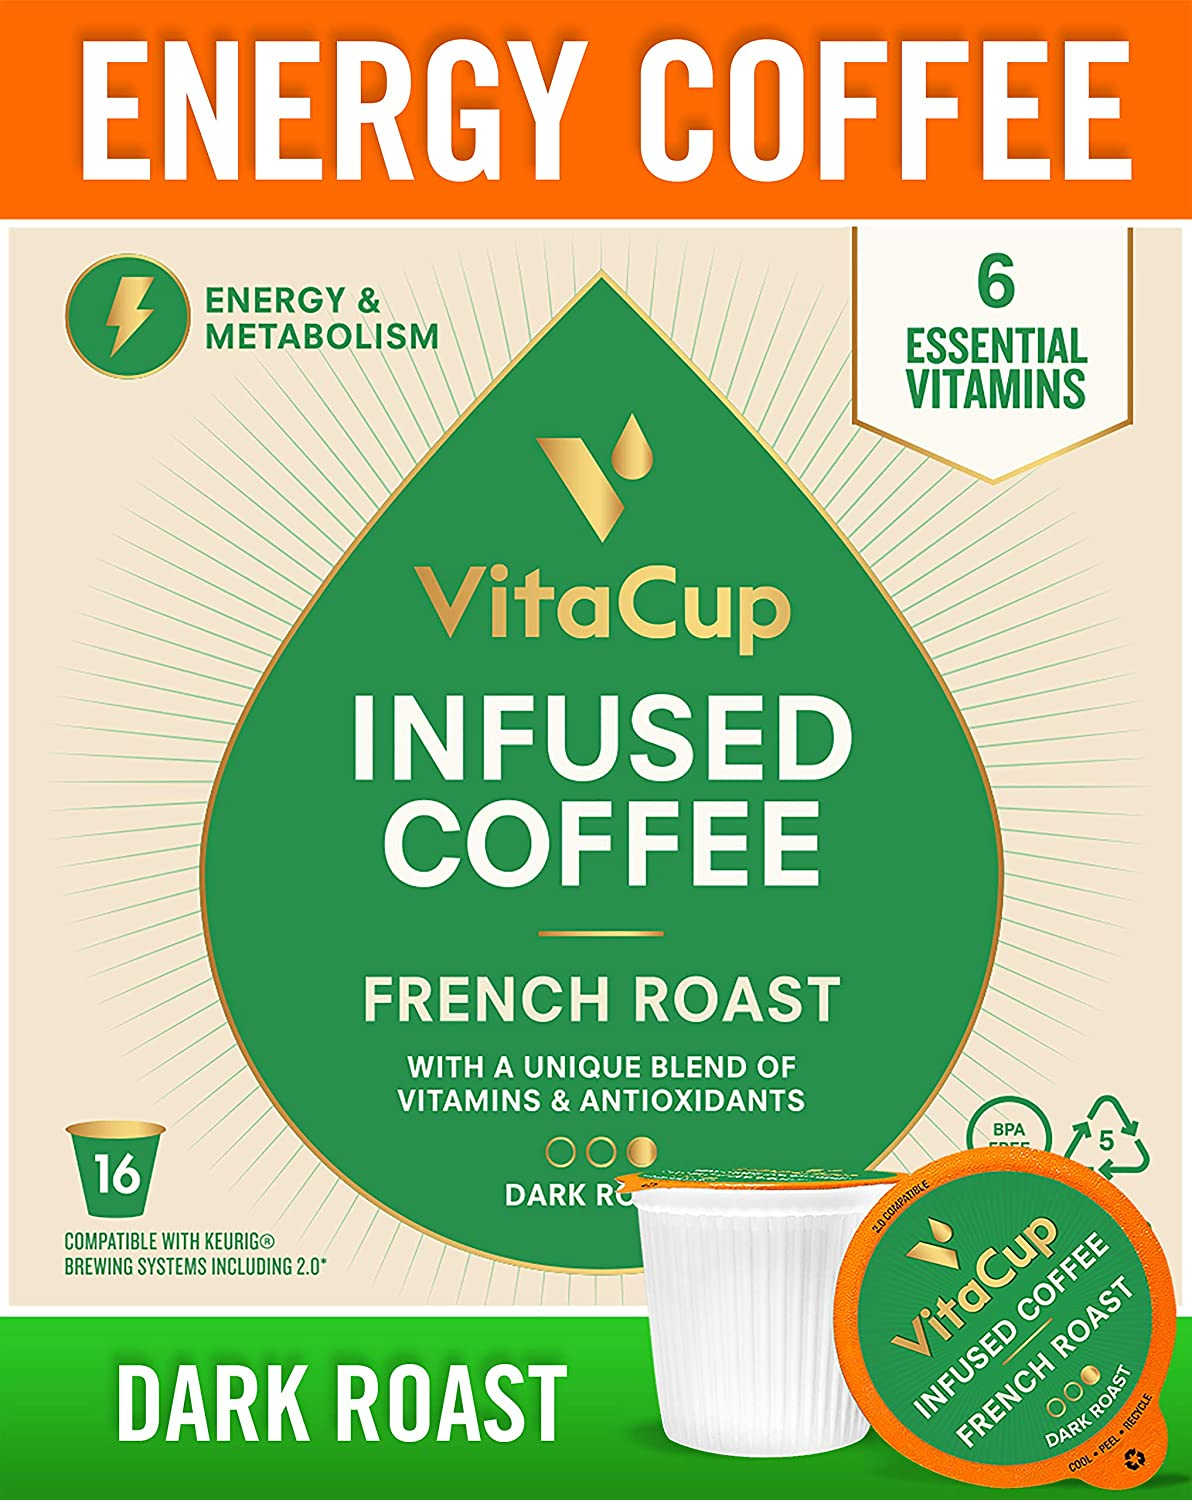 VitaCup French Roast Coffee Cups Infused With Essential Vitamins B12, B9,  B6, B5, B1, and D3, in Single